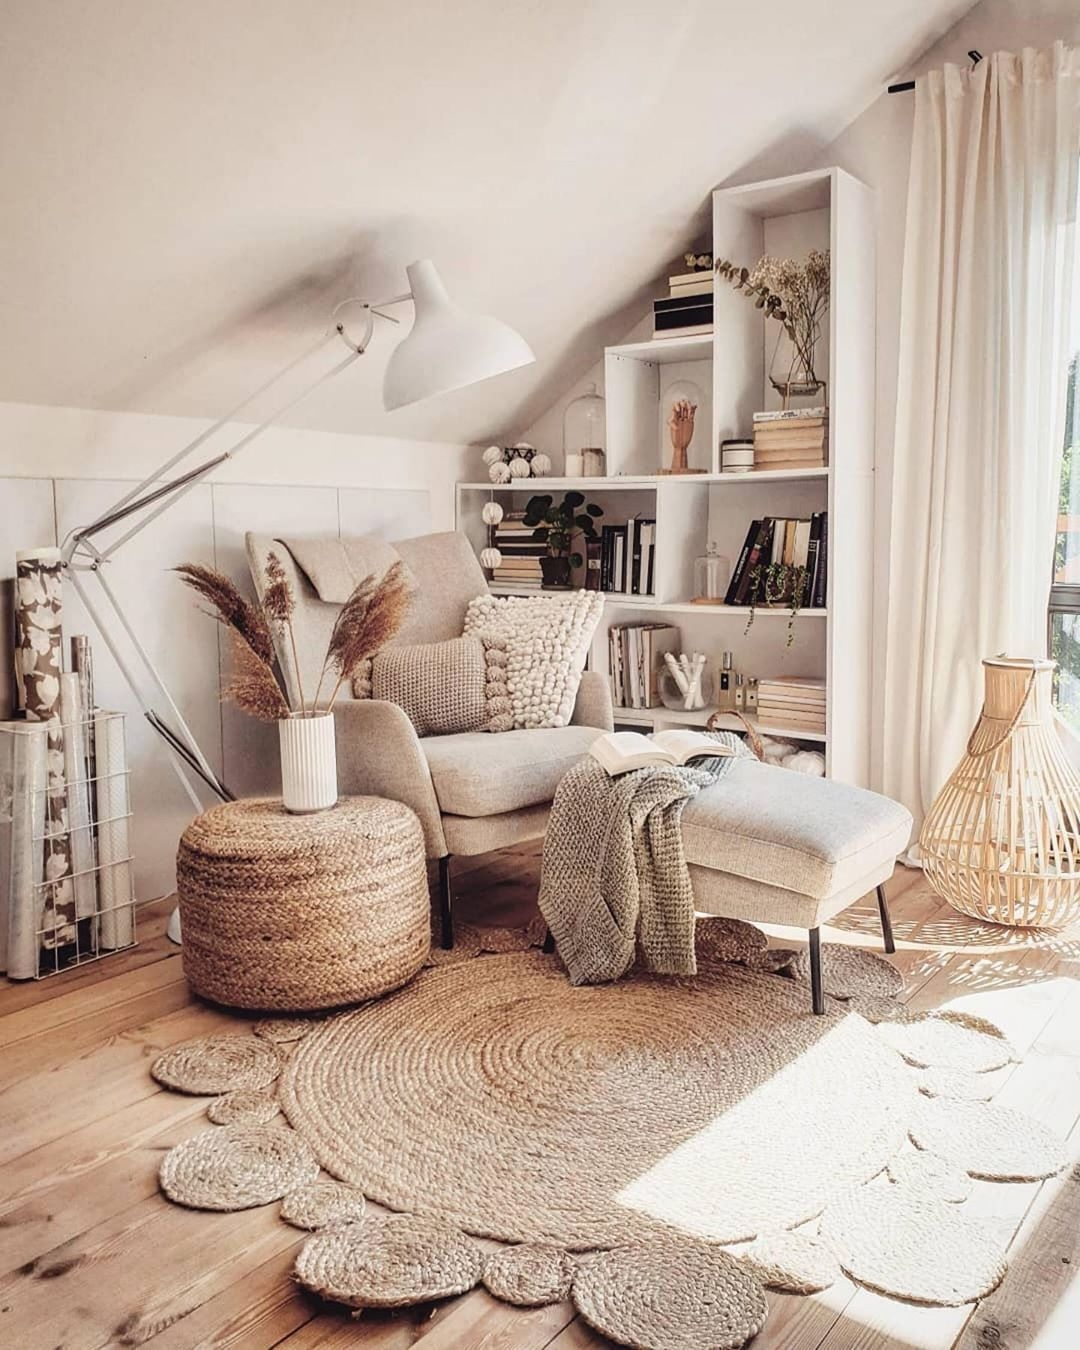 Charming Boho Living Room Decor On A Budget Ideas Spaces Living Room Chairs On Extraordinary Pin by Emily Martin On Room On Boho Living Room Decor On A Budget Ideas Spaces Living Room Chairs